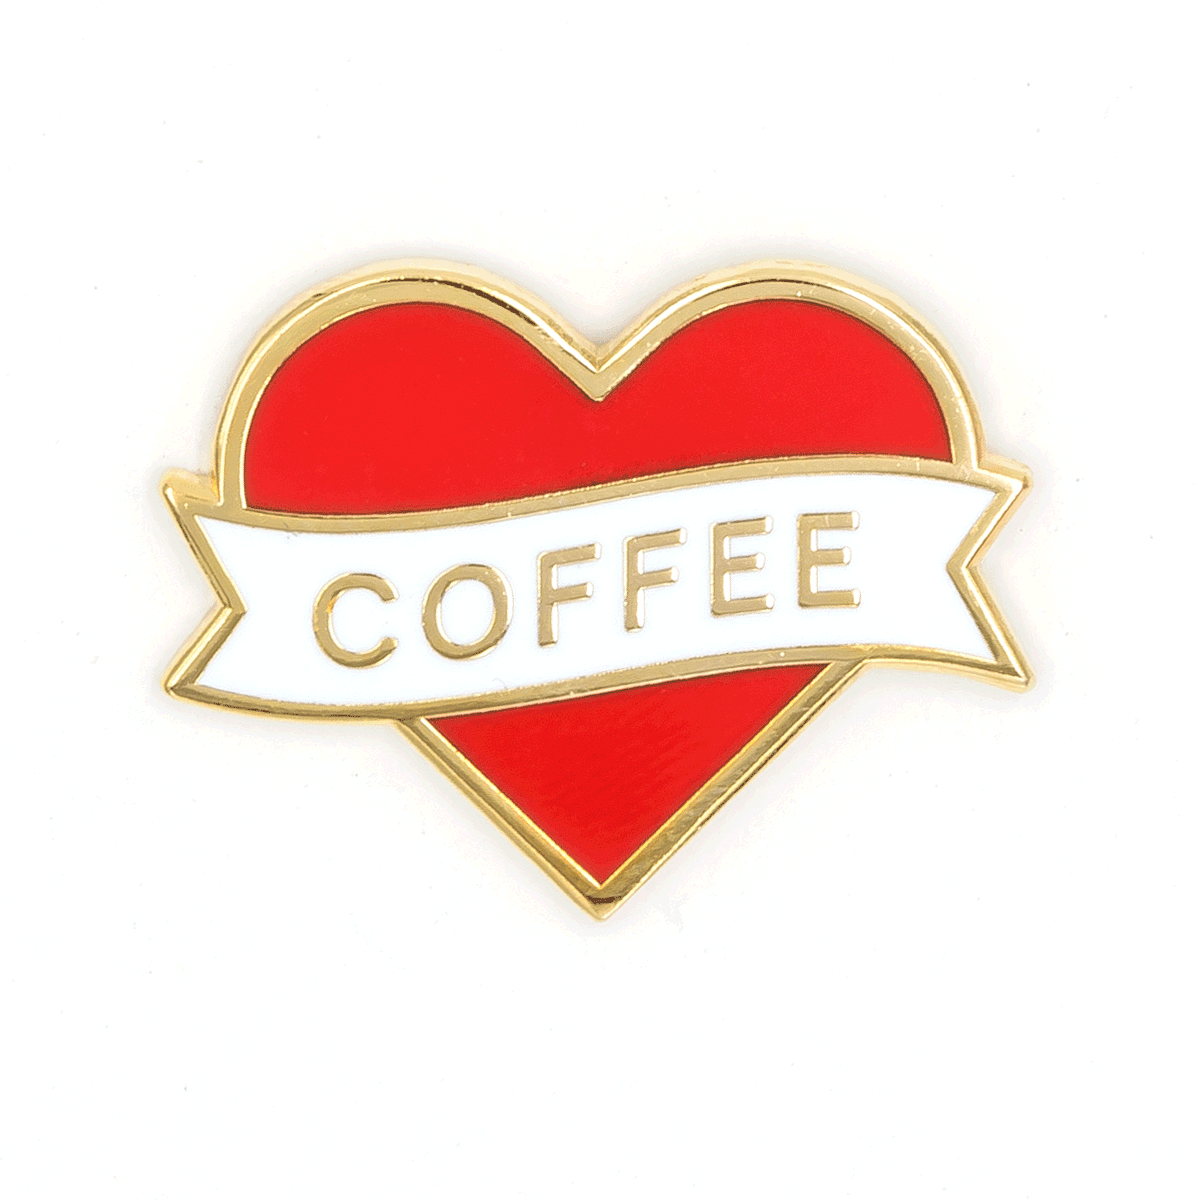 Enamel Pin - Heart Coffee